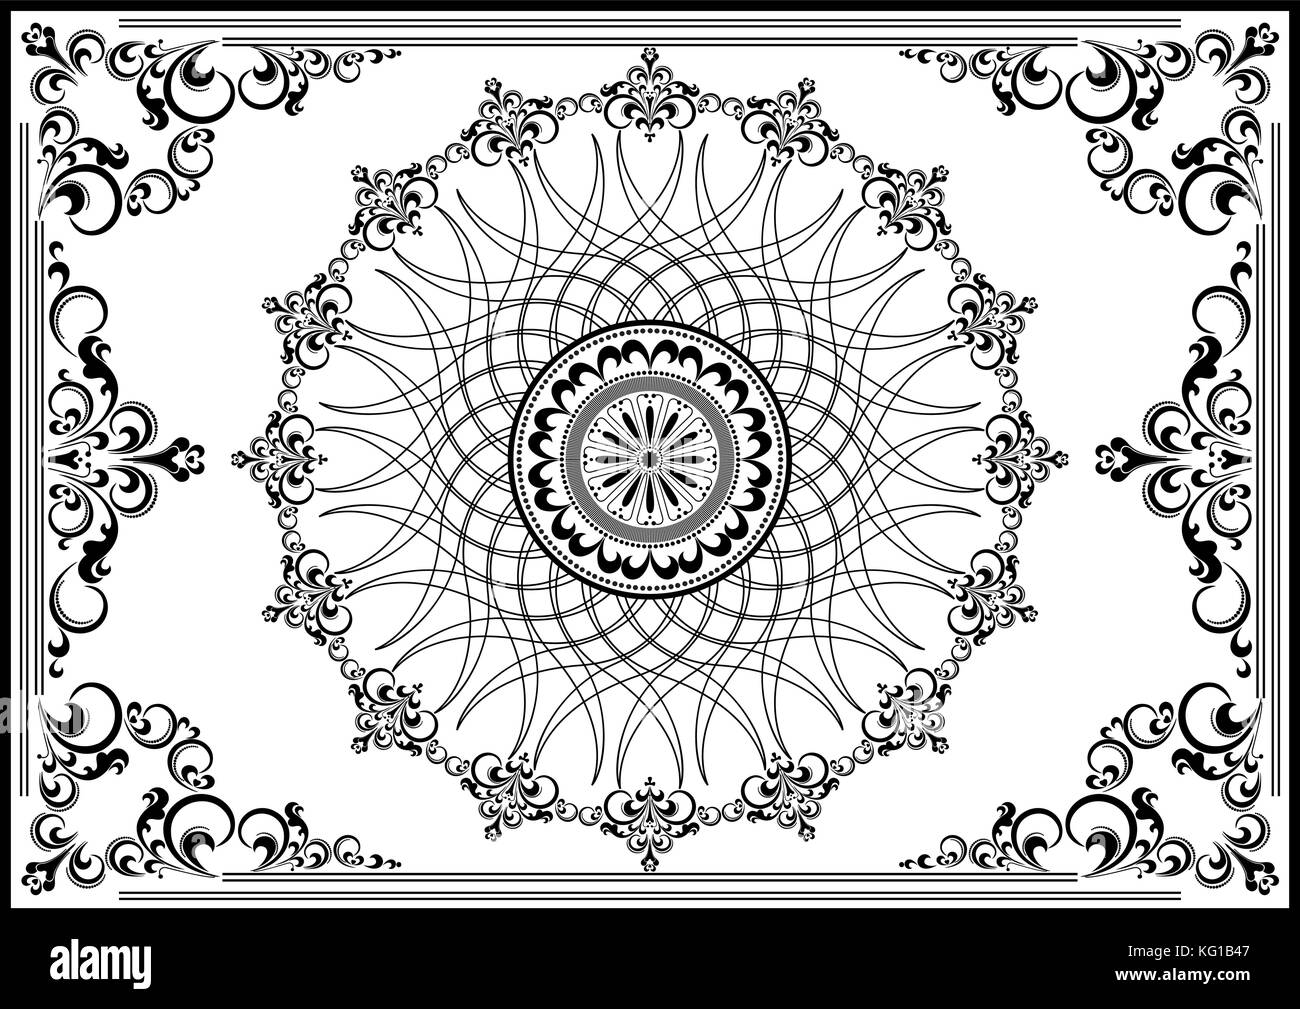 Luxury vintage frame with black ornament on white background - Stock Image